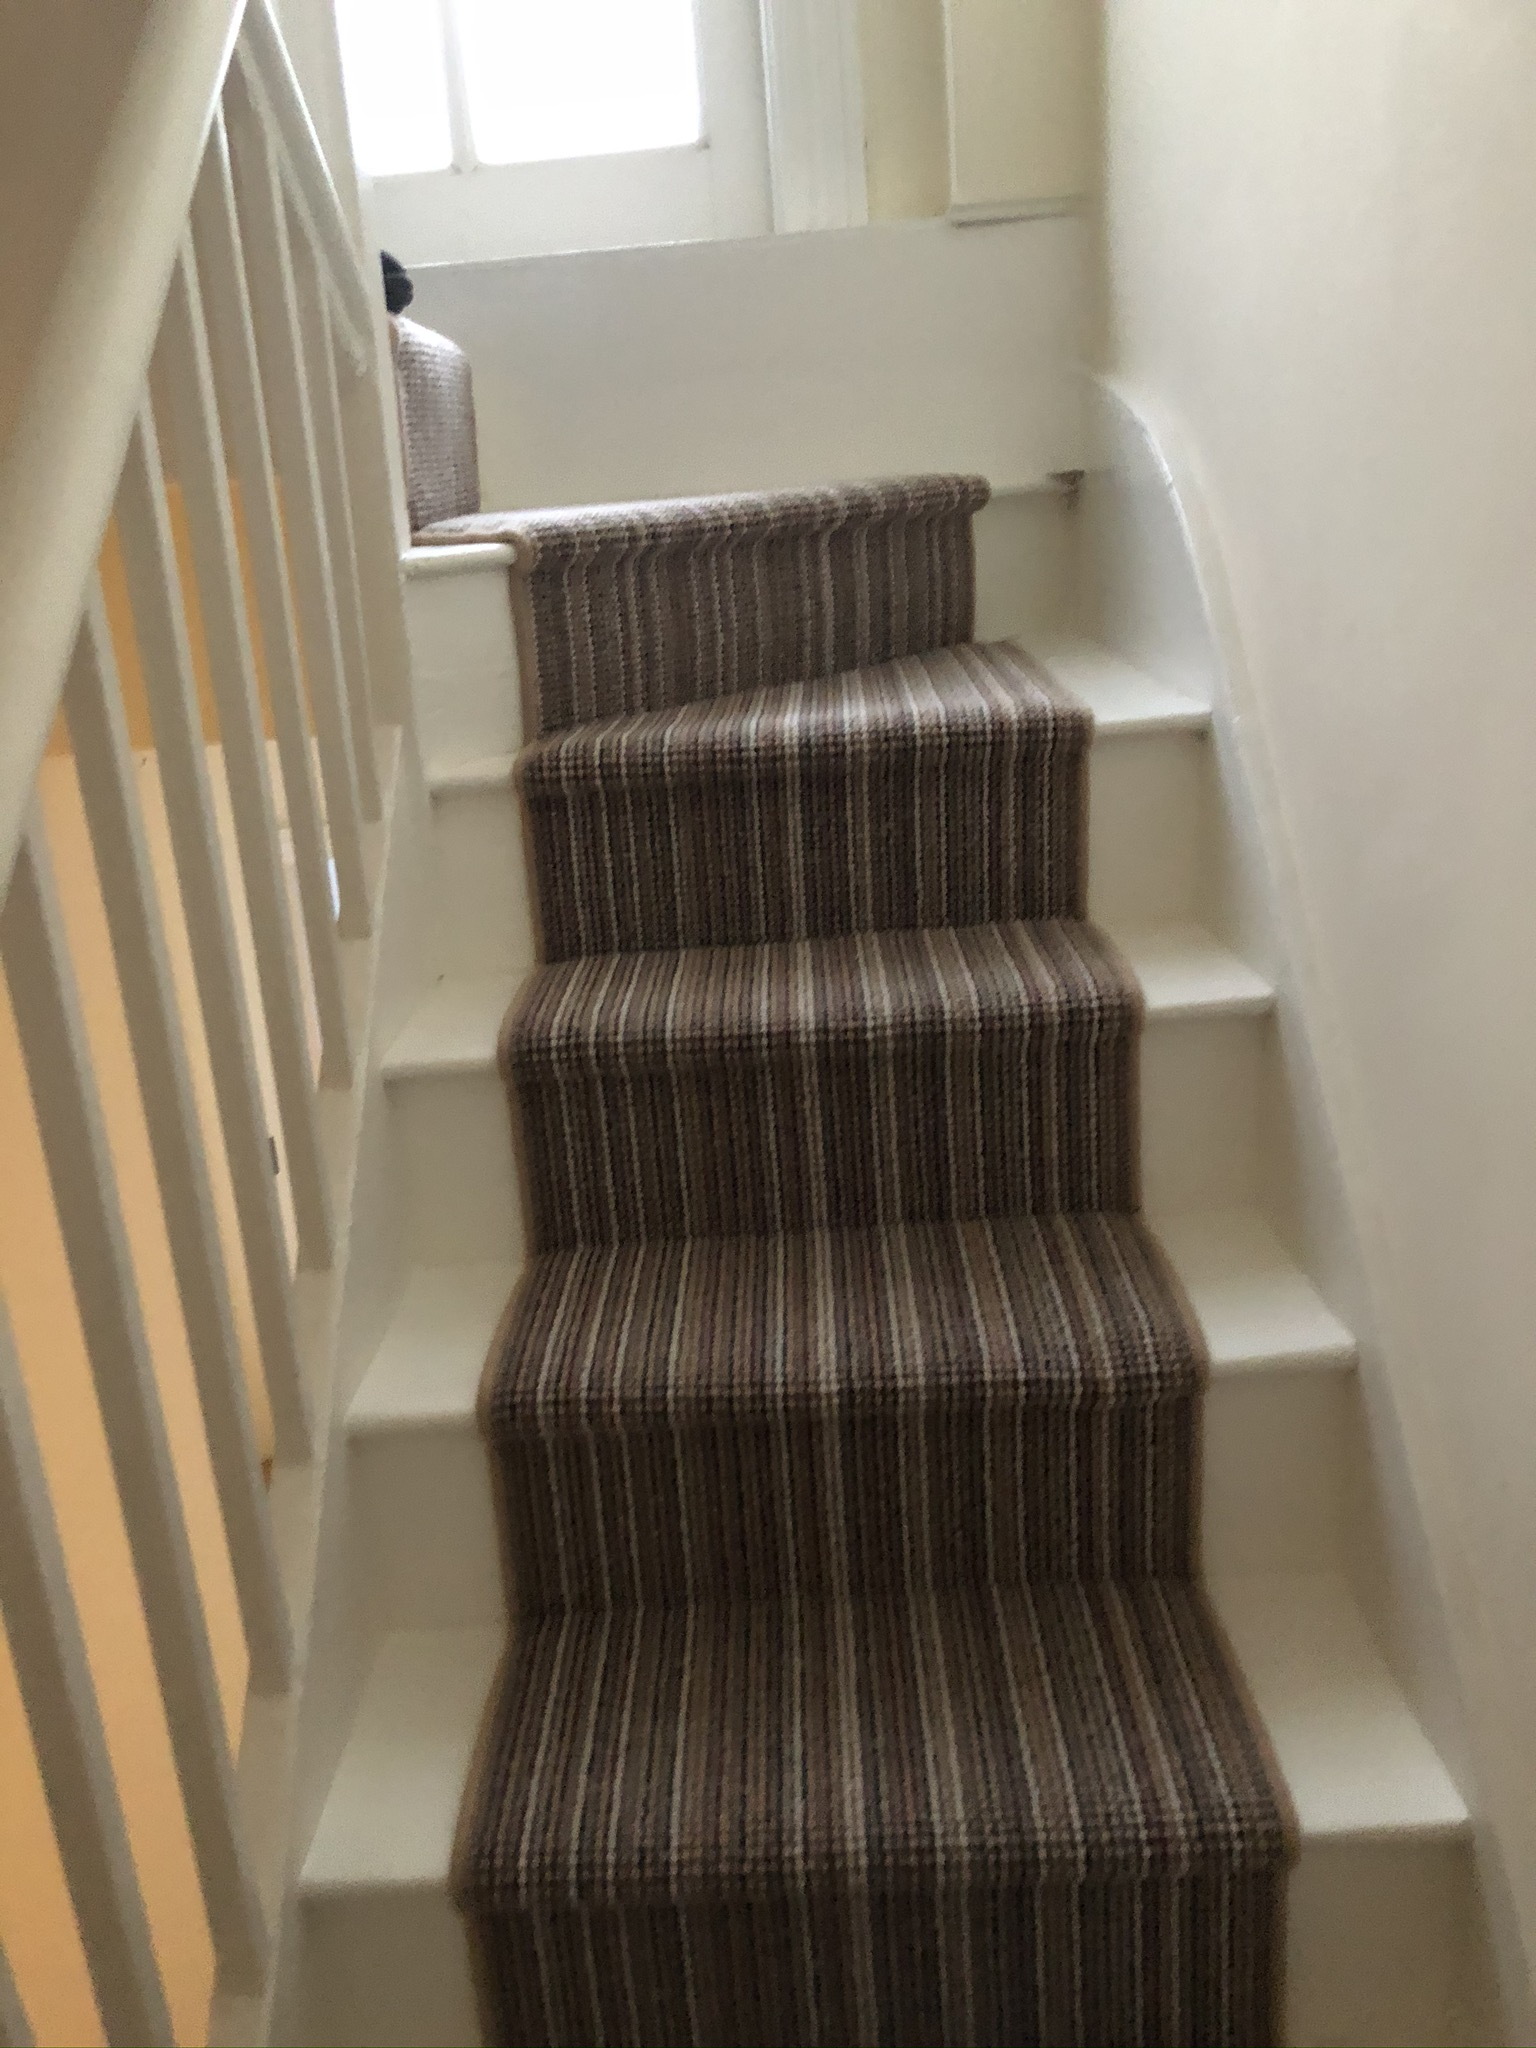 Multicolour Stripe Carpet Installation in Islington 4